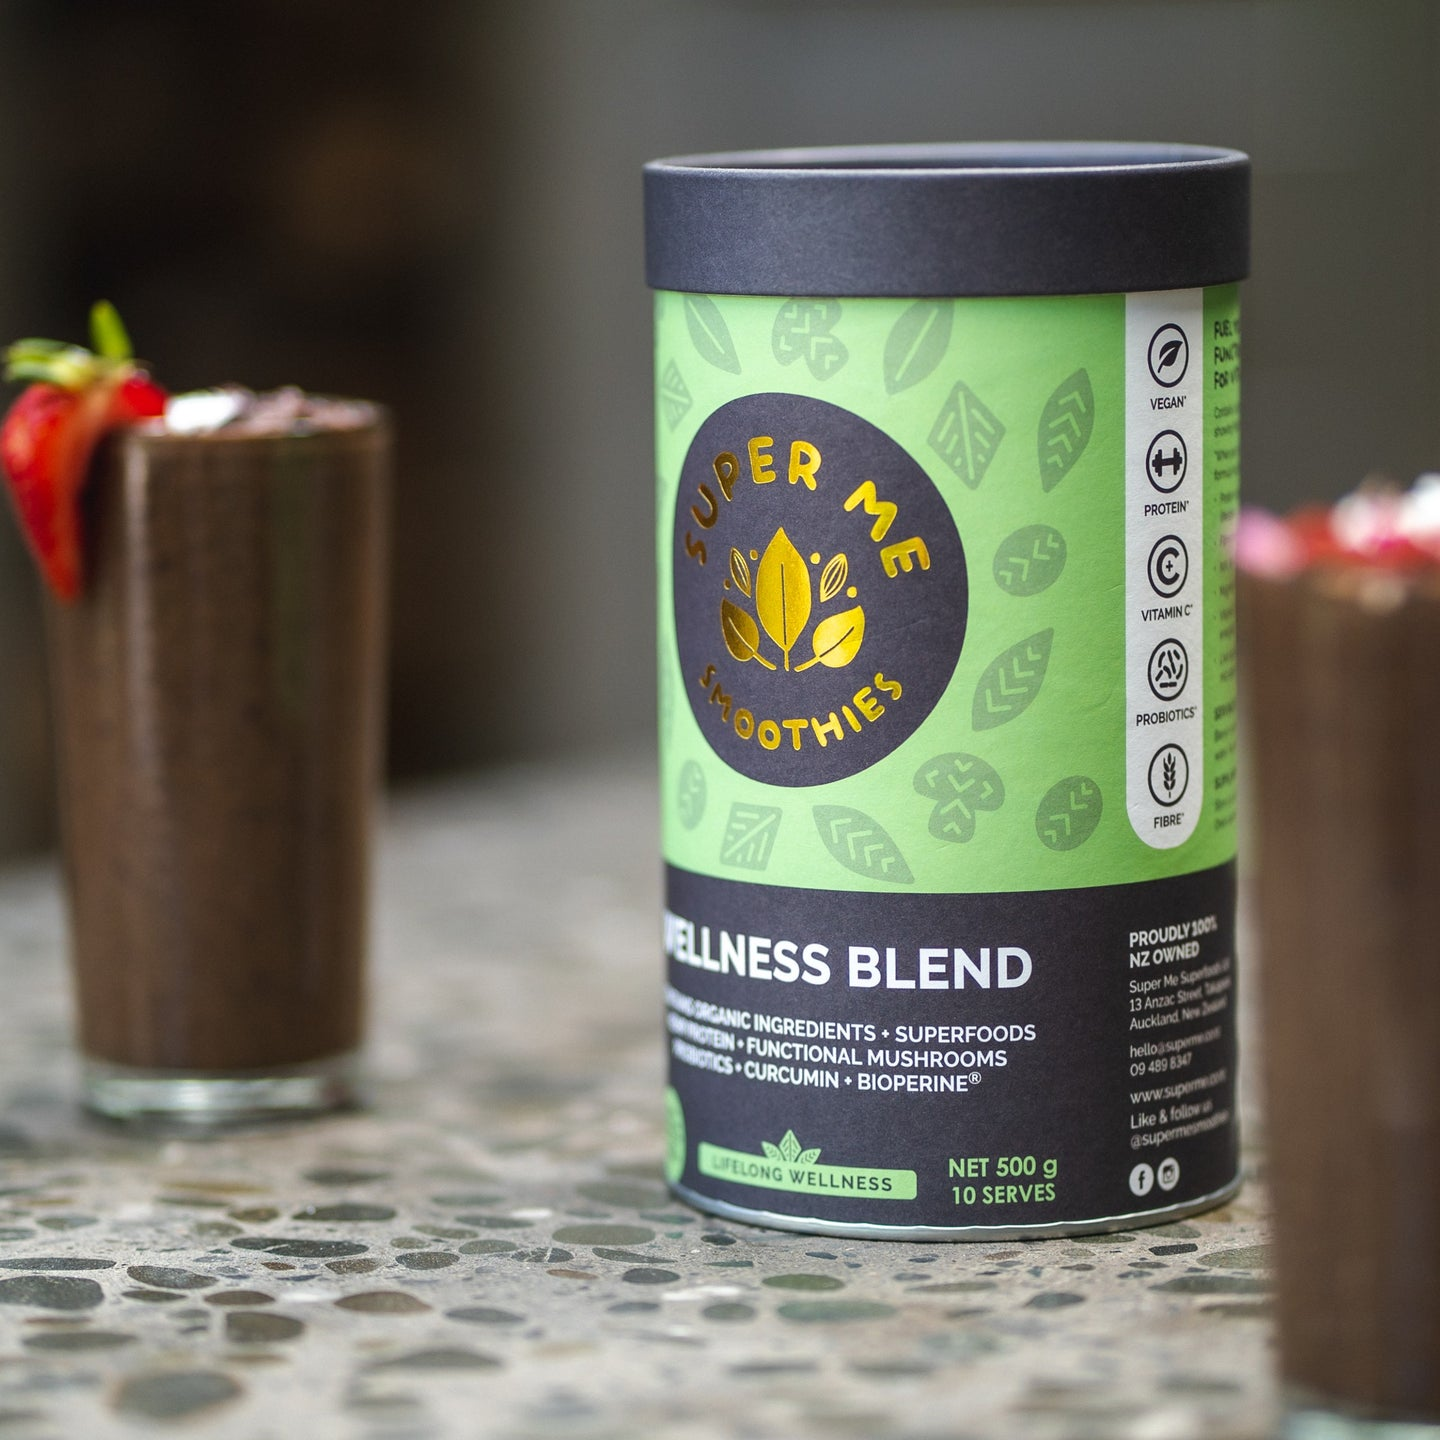 Super Me Wellness Smoothie Blend